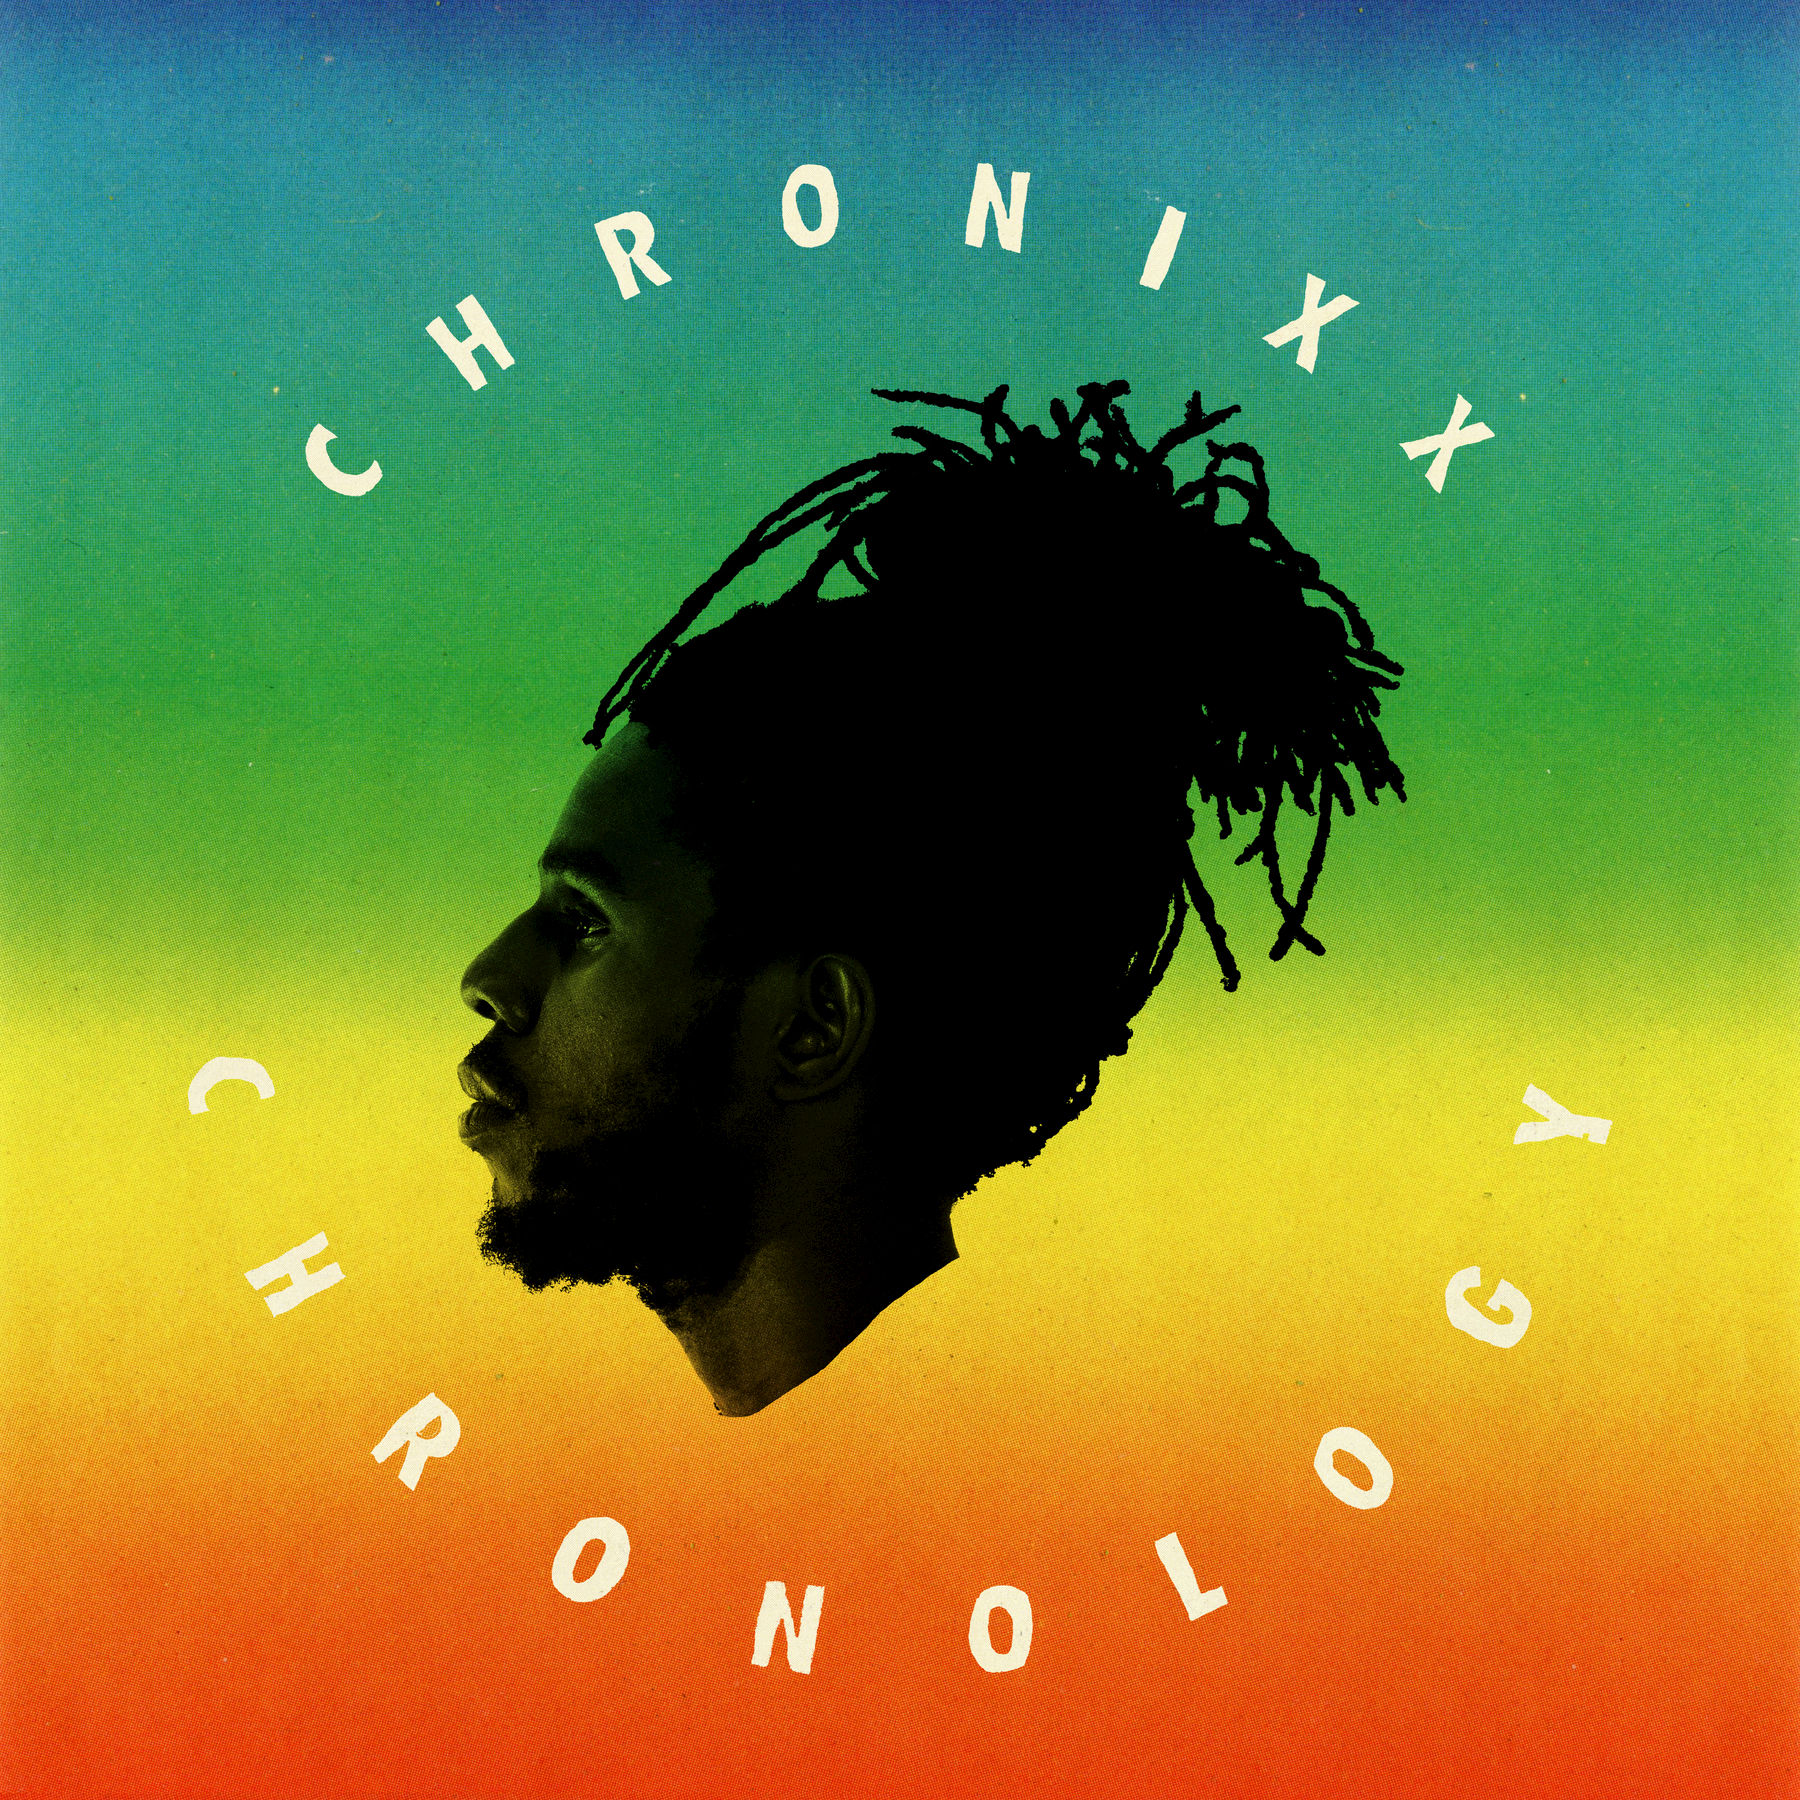 "Son of reggae artist Chronicle, Jamaica's Chronixx got his start under the name Little Chronicle. Born Jamar Rolando McNaughton, Chronixx showed musical promise at a young age, prompting his father to bring his son into the studio where he would meet reggae singers like Gregory Isaacs and Burro Banton. He launched his own career in 2003 while still singing harmony with artists like Lutan Fyah. A string of singles in 2011 that included ""Behind Curtain"" and ""African Heritage"" helped put him on reggae's frontline, then in 2012, the mixtape Light a Fyah appeared, presented by Diplo under his Major Lazer alias. The singles ""Tell Mi Now"" and ""Here Comes Trouble"" both landed in 2013. ~ David Jeffries"